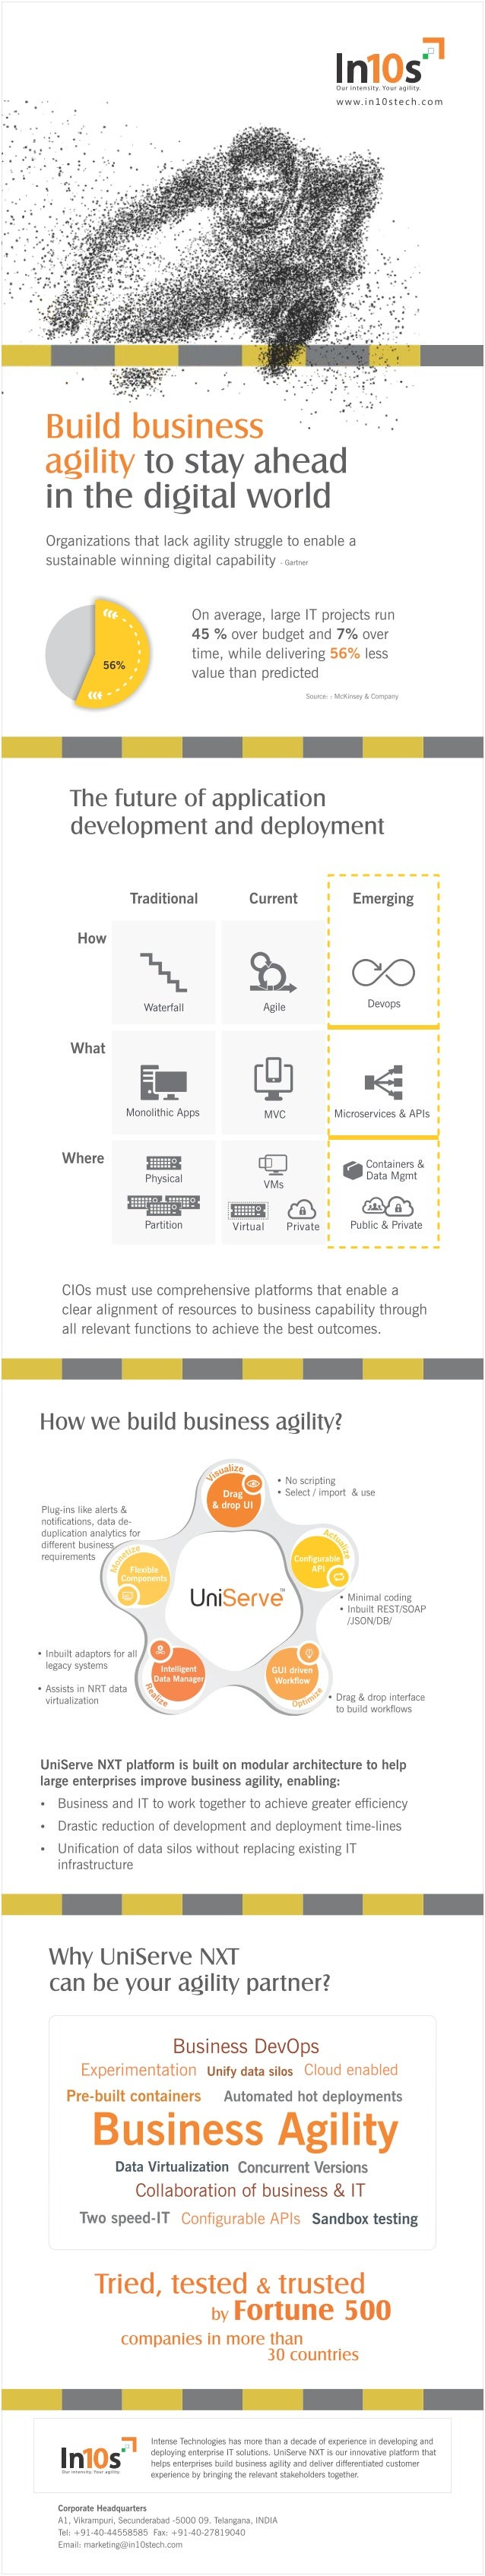 Build business agility to stay ahead in the digitalword